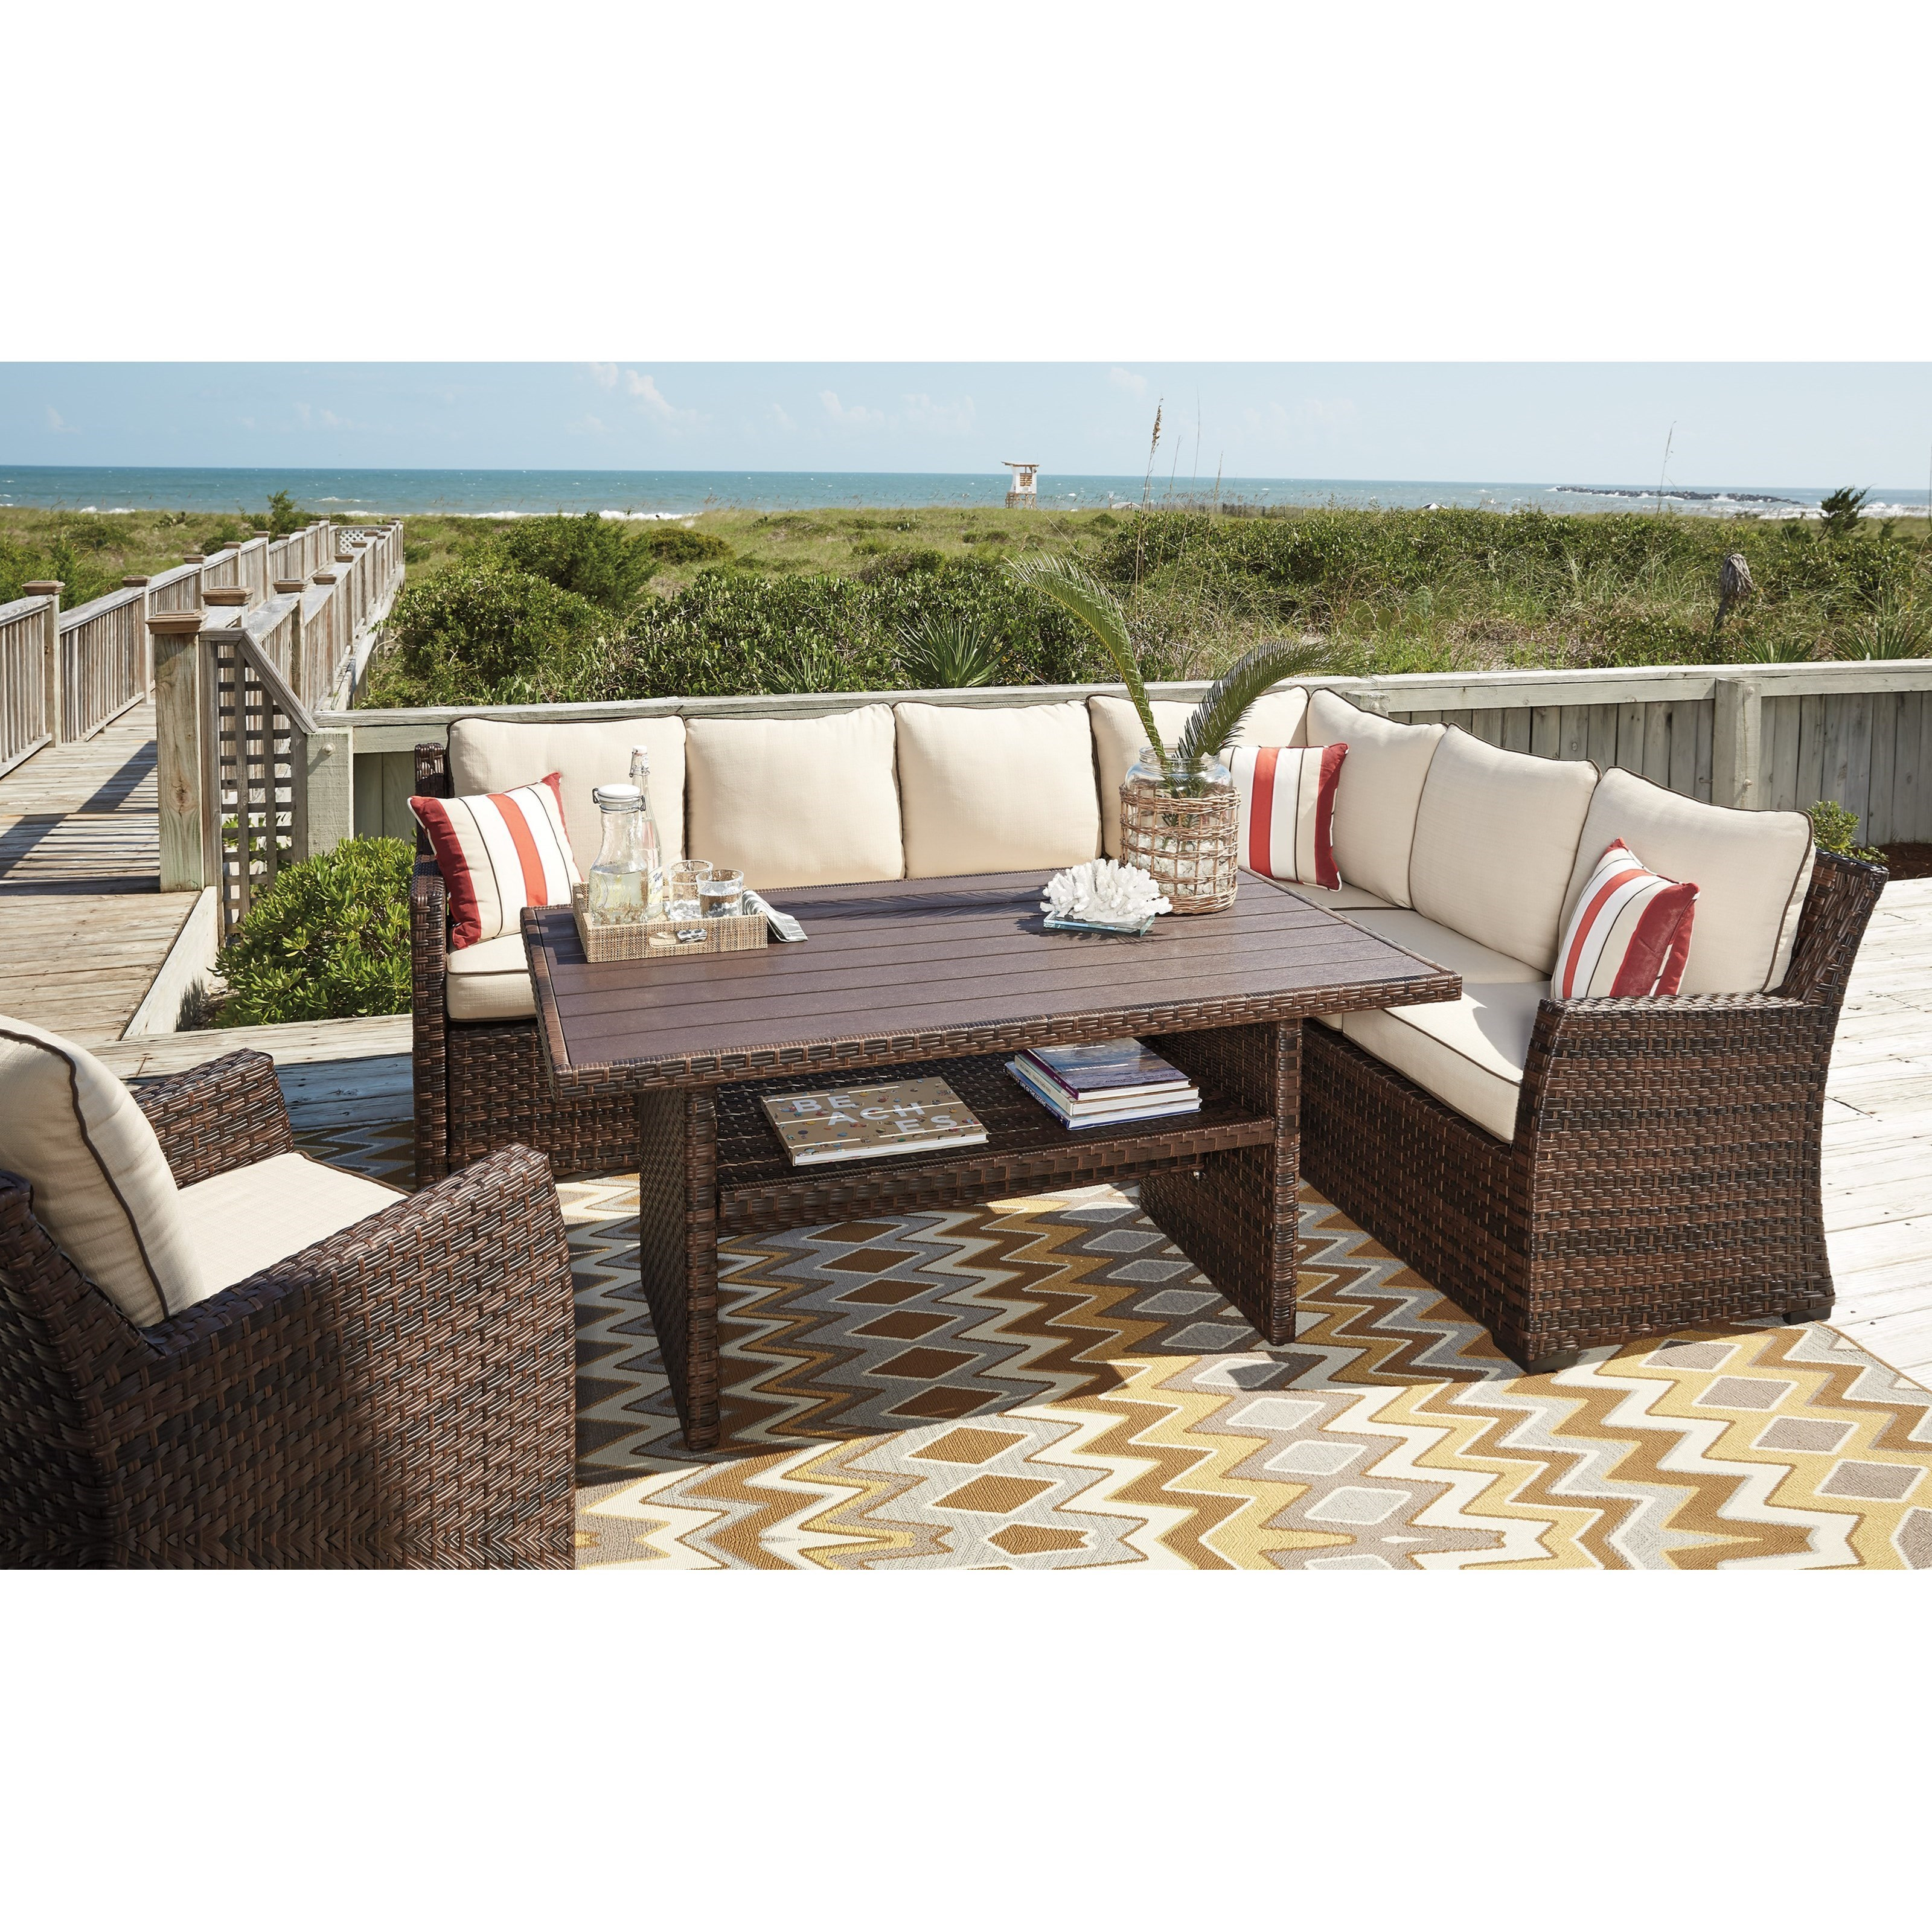 Ashley (Signature Design) SalcedaOutdoor Sectional With Table U0026 Lounge  Chair ...